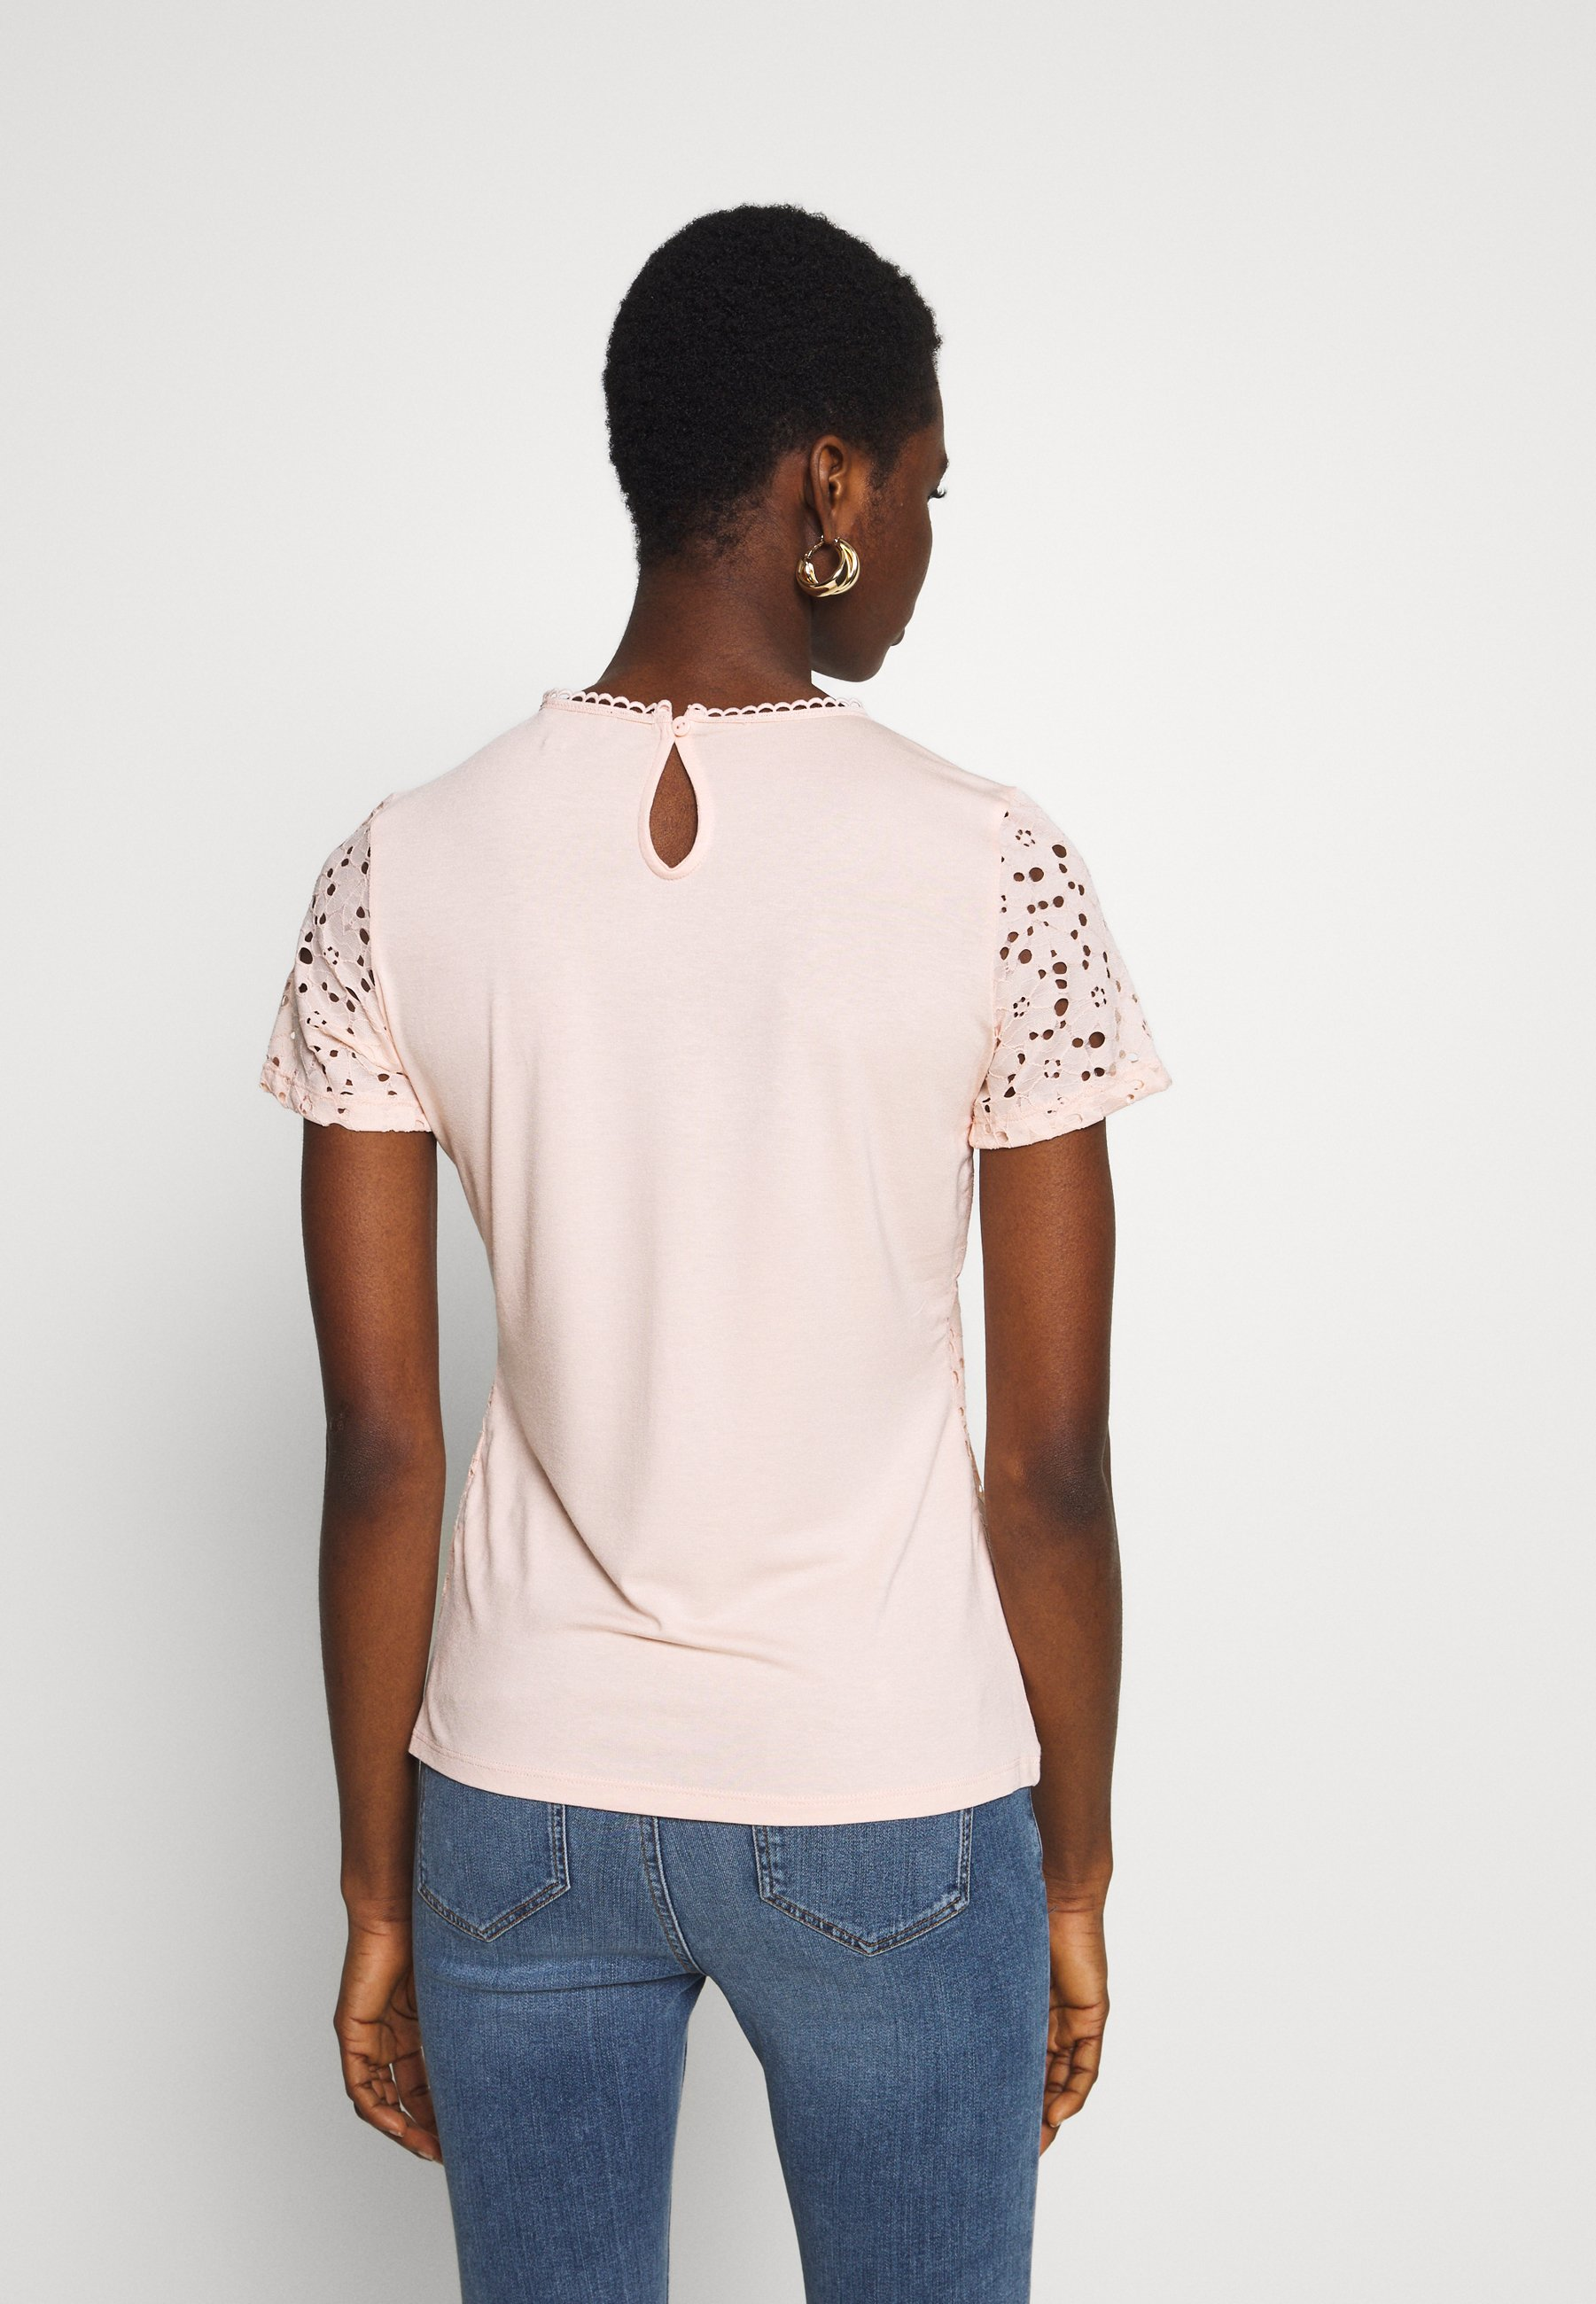 Dorothy Perkins Short Sleeve Tee - Bluser Apricot/oransje